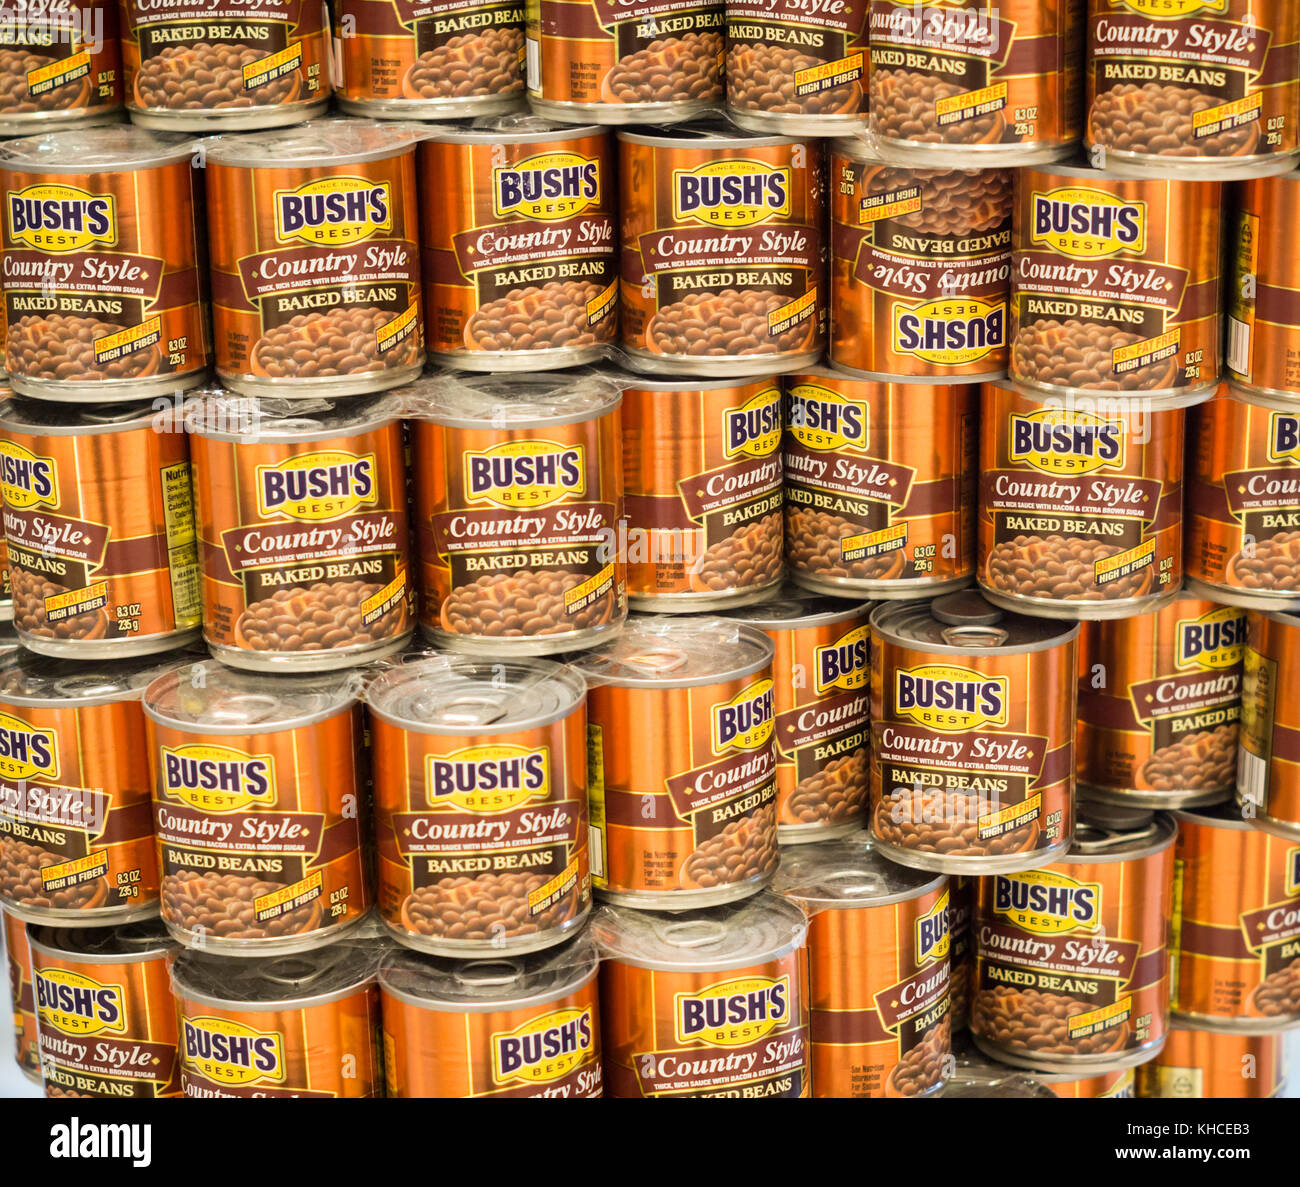 A display of Bush's brand baked bean cans in New York on Tuesday, November 7, 2017. (© Richard B. Levine) - Stock Image